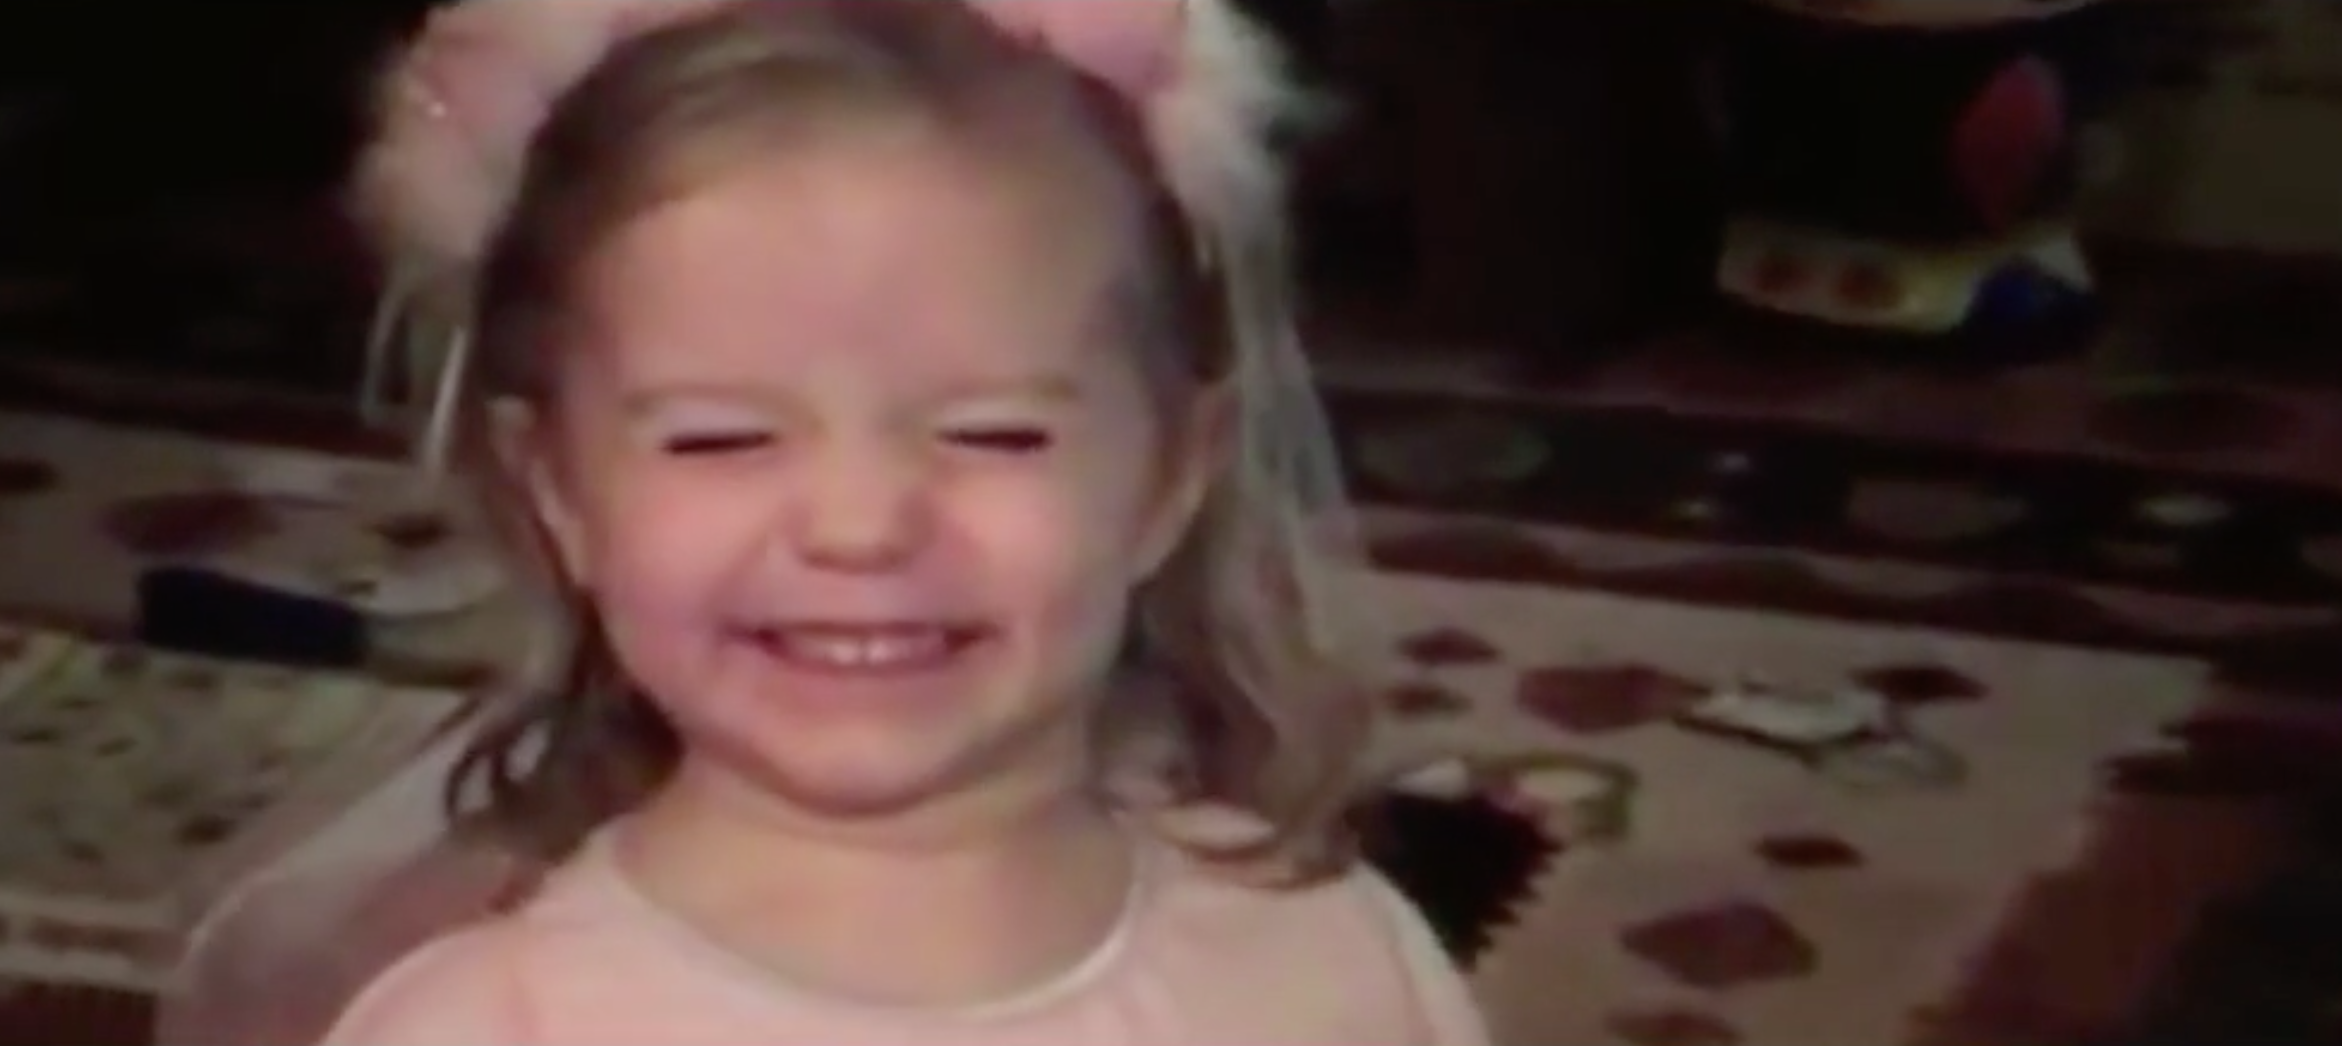 Madeleine was just three-years-old when she disappeared (Netflix/The Disappearance of Madeleine McCann)